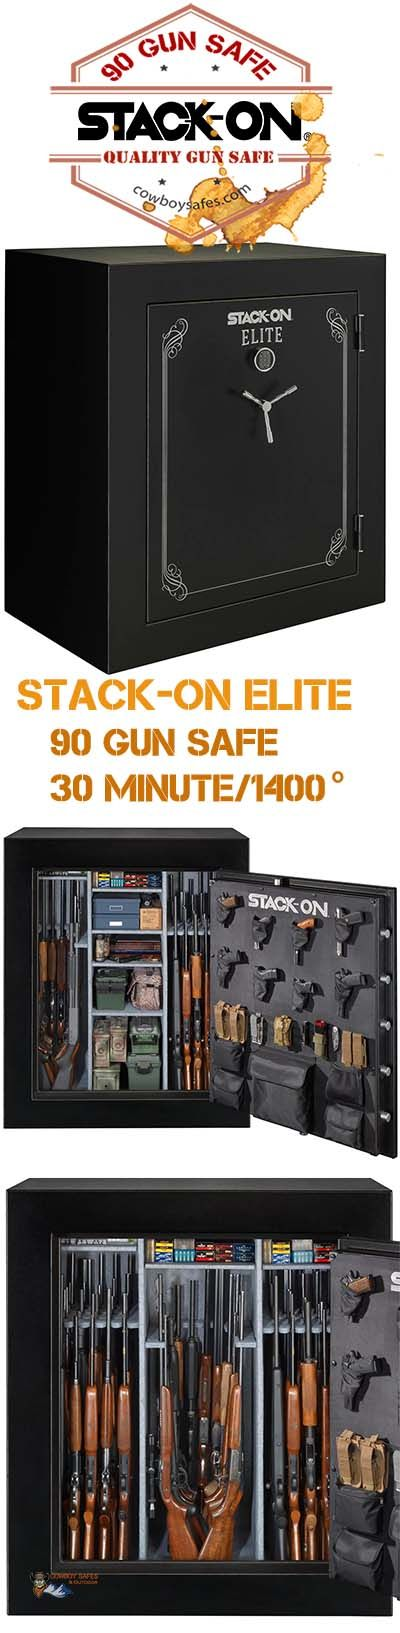 Stack On Gun Safe Total Defense Safe Series.  Stack-On is well-known among Gun Owners for their Quality and Affordable Safes -  Stack-On Biometric Gun Safe | Stack-On Armorguard gun safe - Stack-On Total Defense gun safe - Stack-On Tactical Security gun safe - Stack-On Executive gun safe -  Stack-On Elite gun safe - Stack-On Woodland gun safe